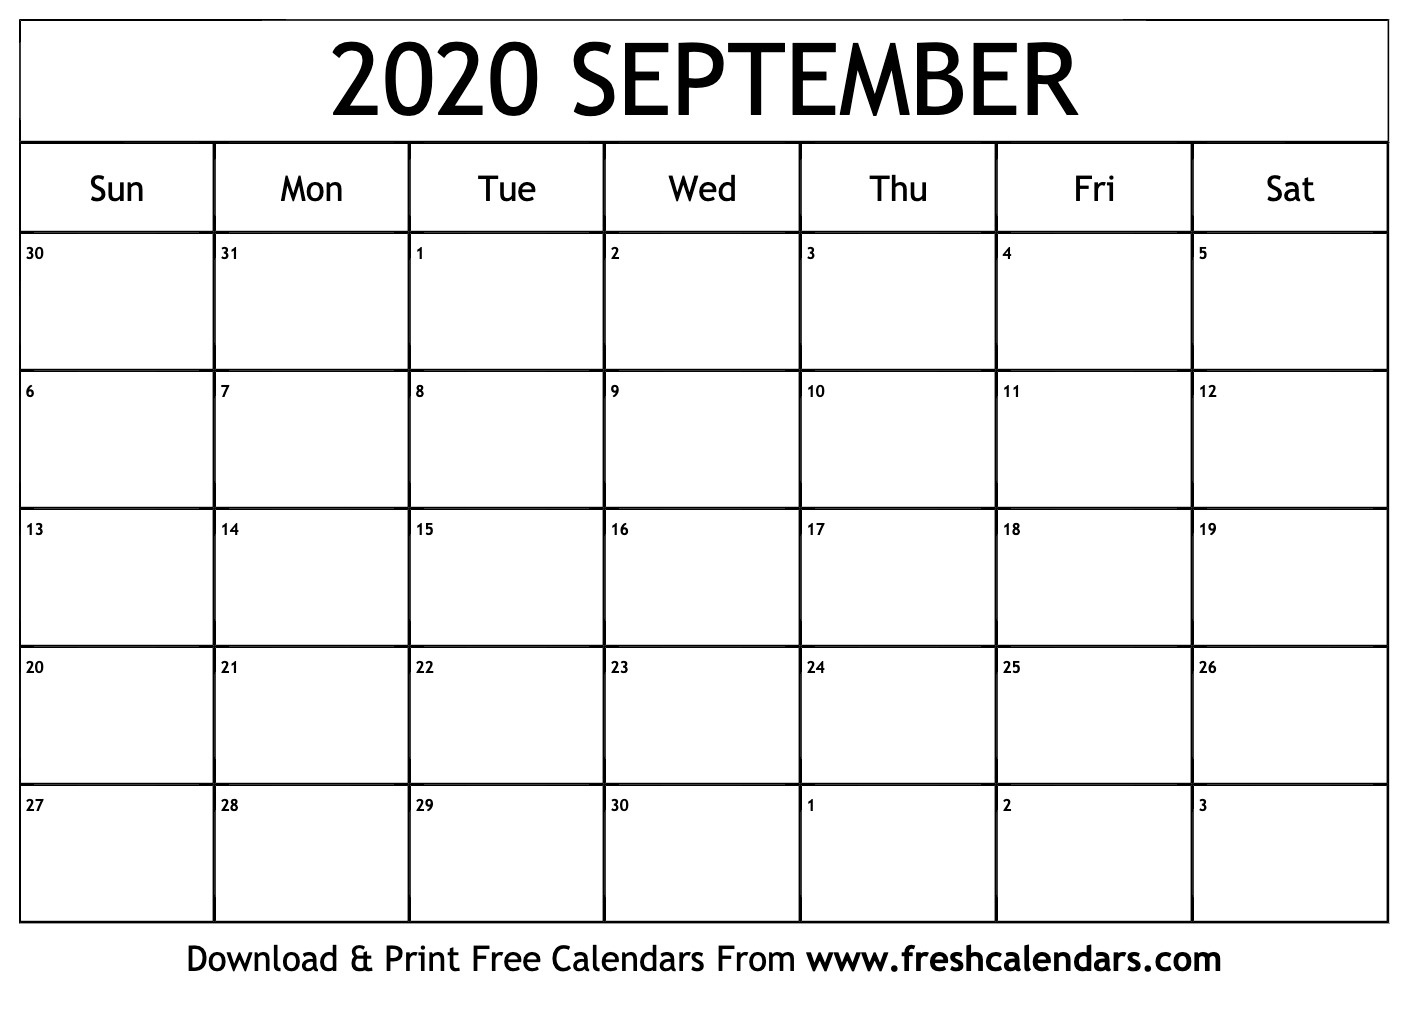 September 2020 Calendar Printable - Fresh Calendars_Blank Calendar September 2020 Pdf